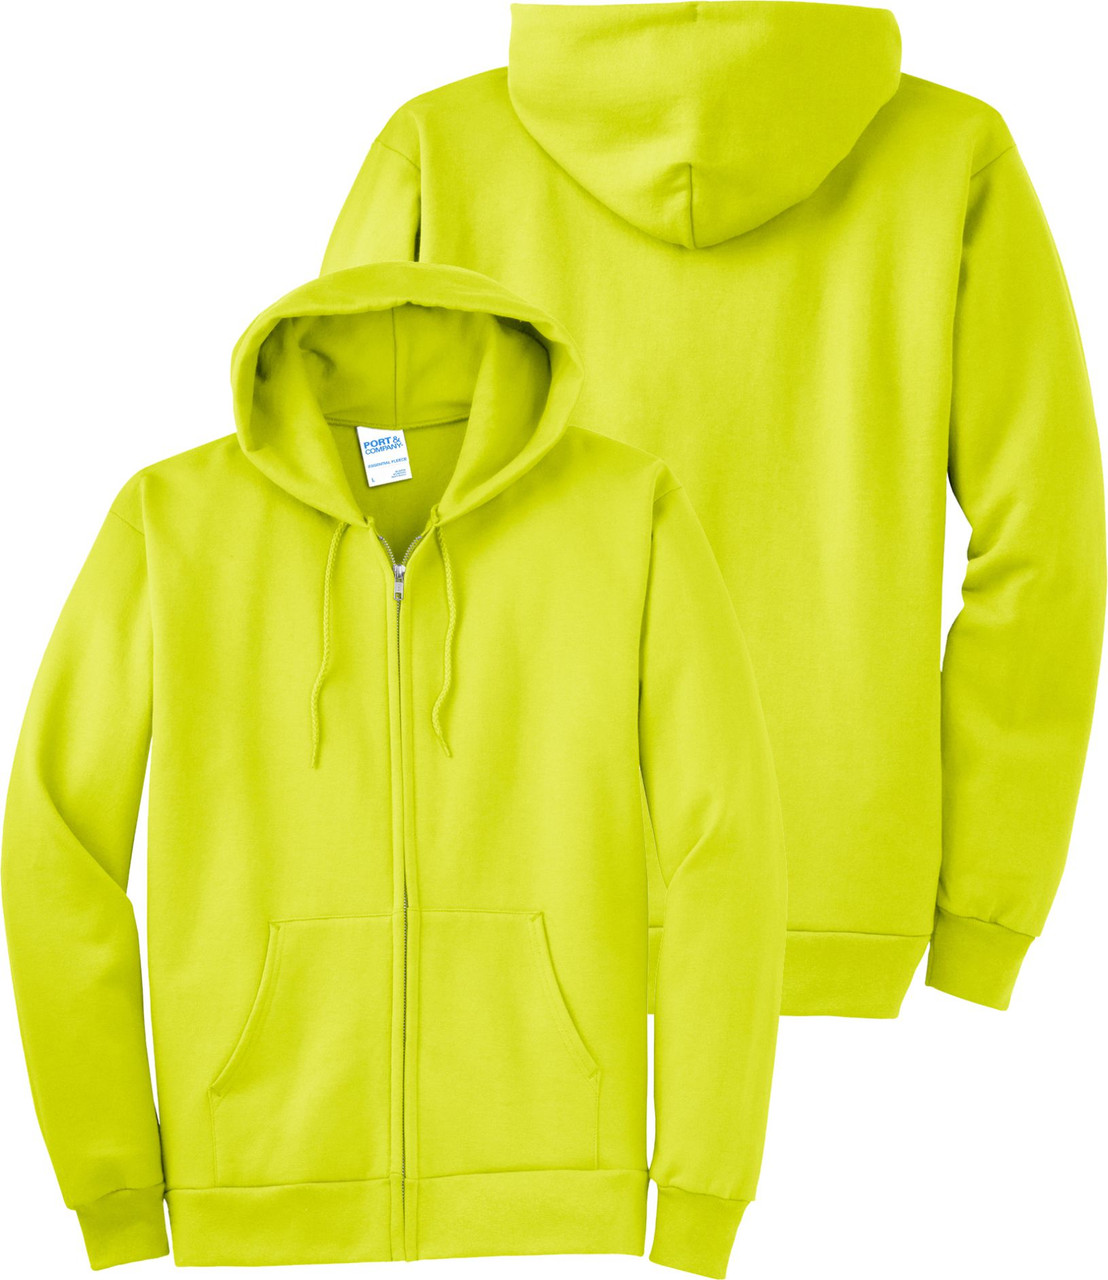 Safety Green Hooded Sweatshirt.  Ask about custom printing on our Hi Vis Hoodies.